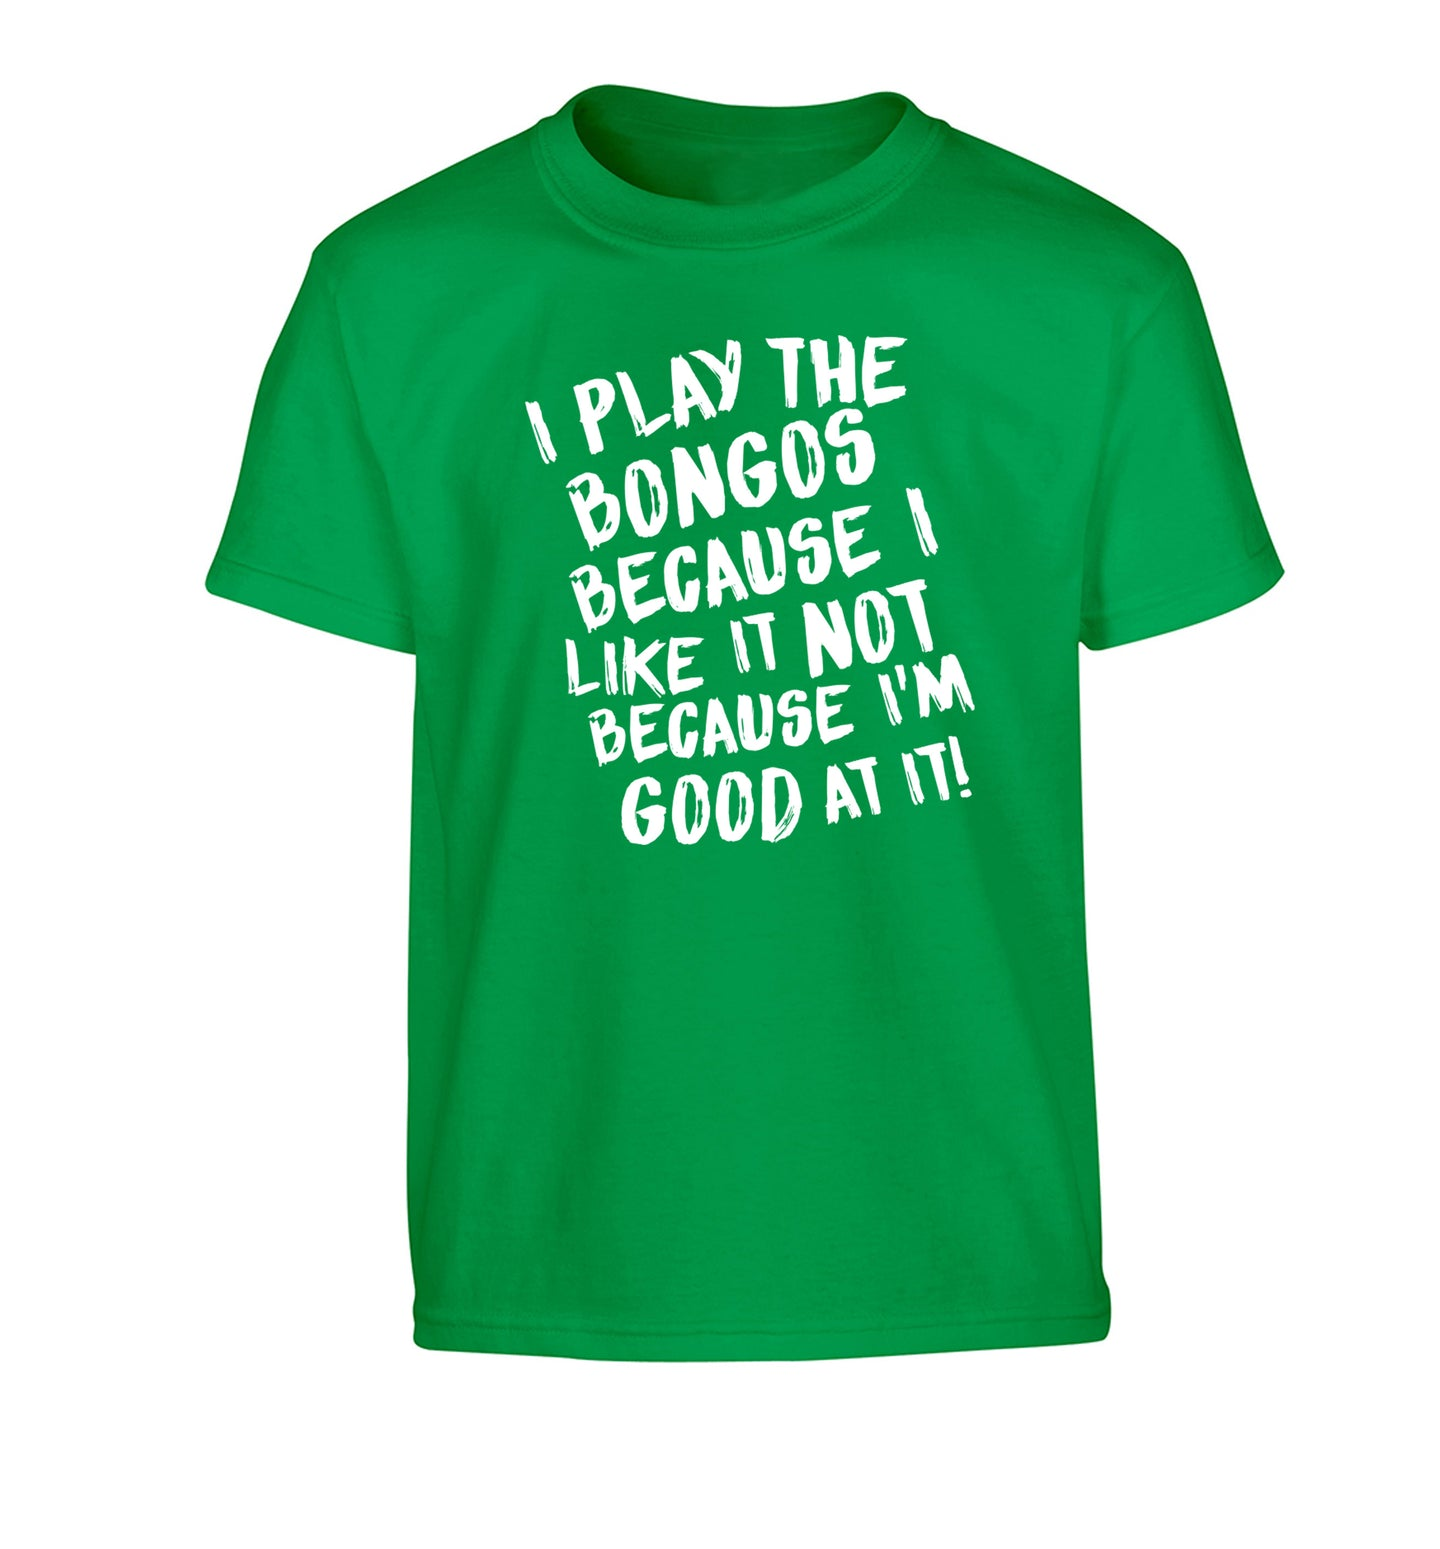 I play the bongos because I like it not because I'm good at it Children's green Tshirt 12-14 Years